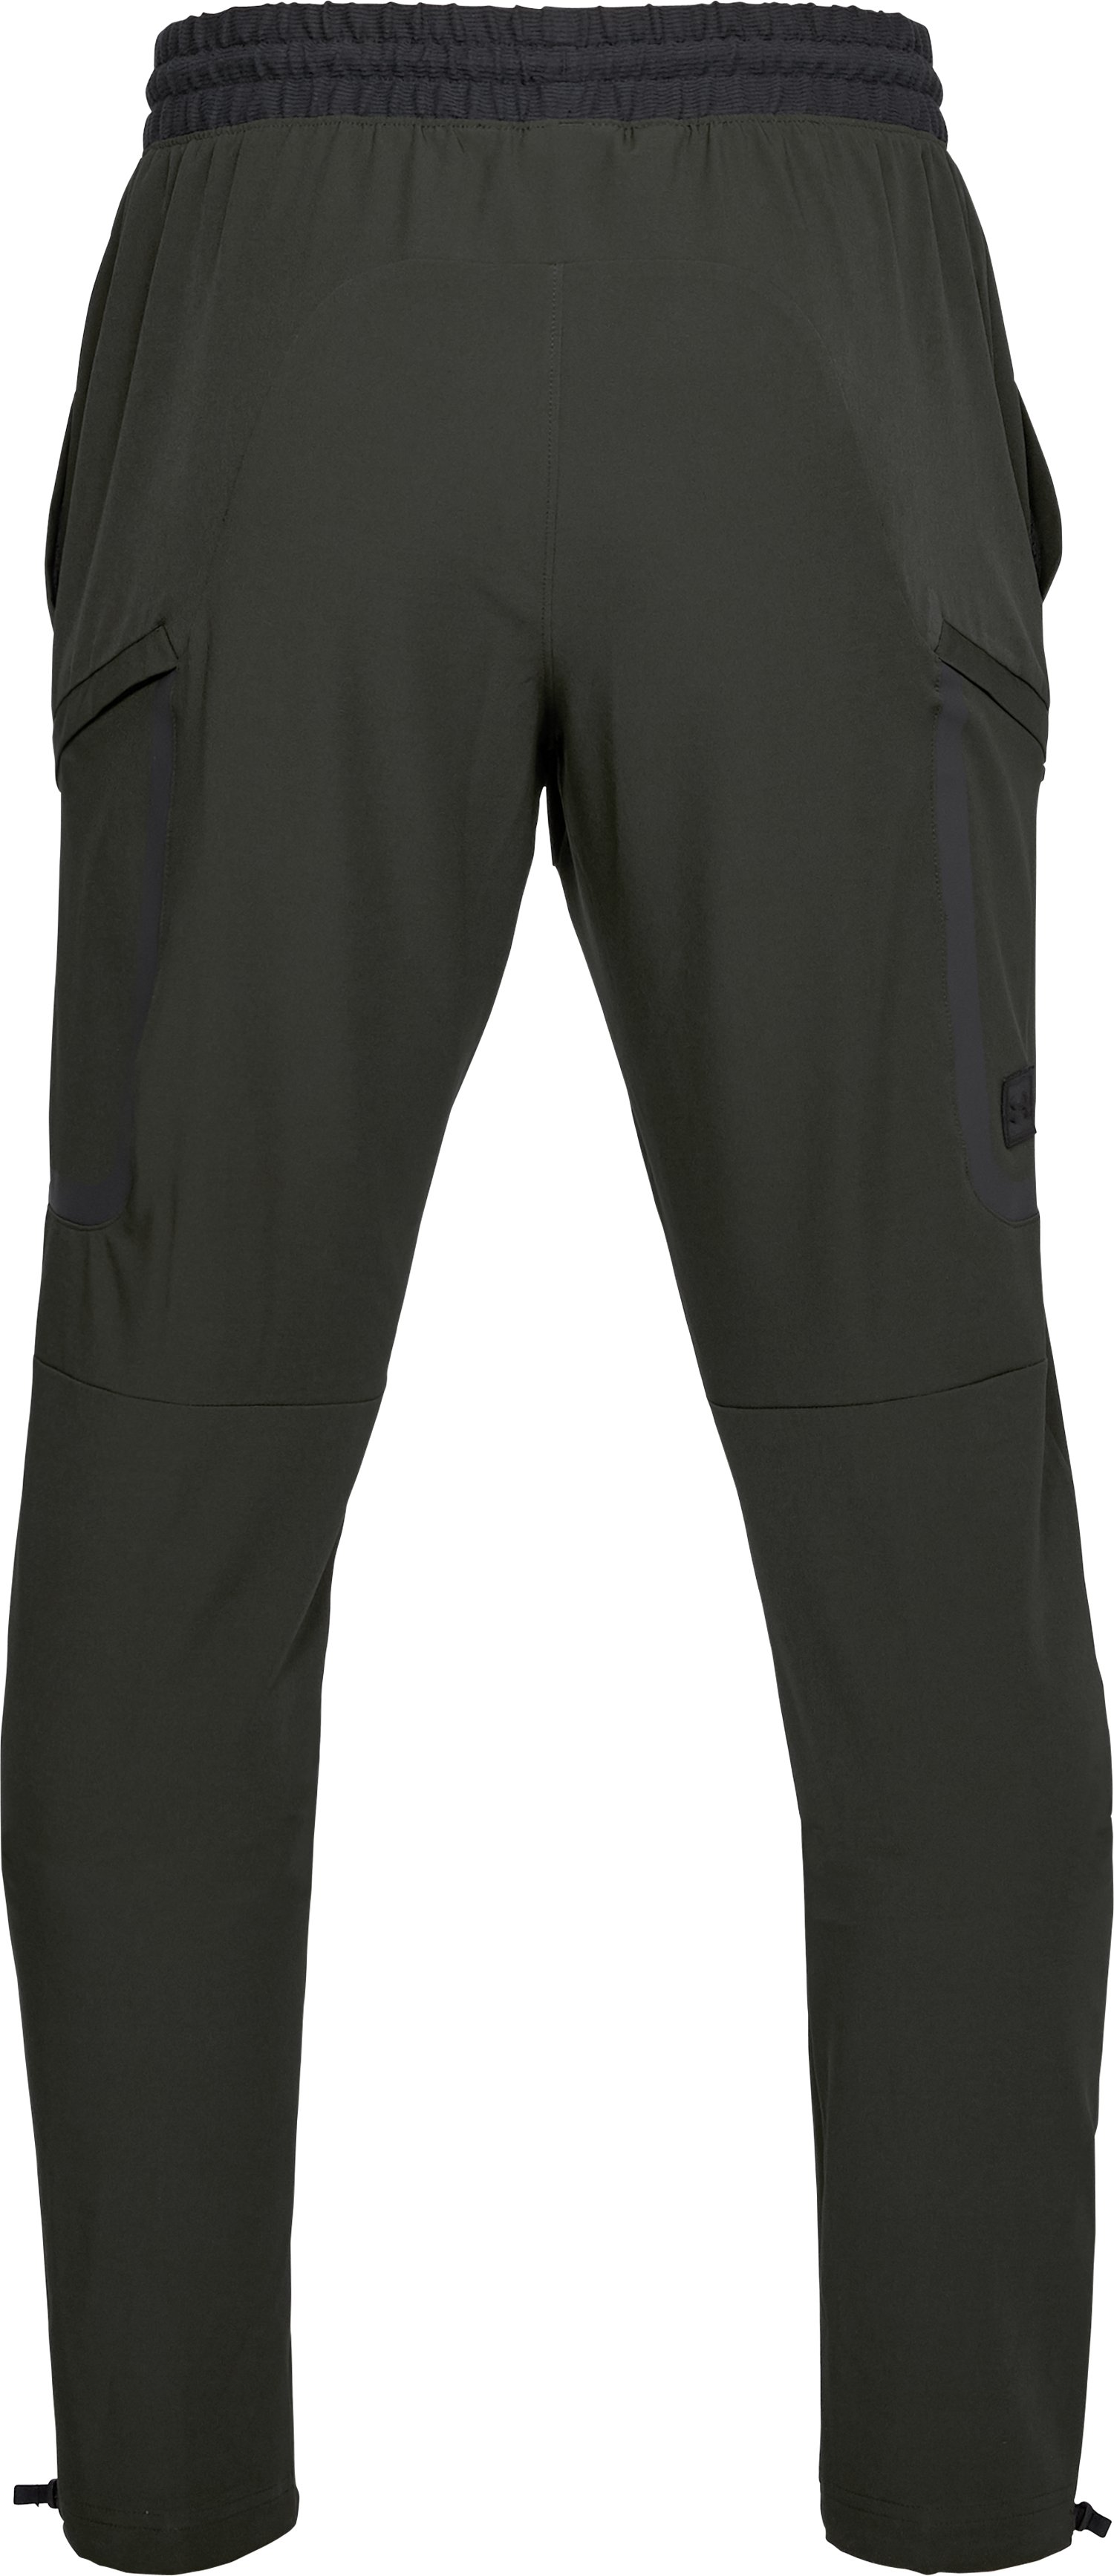 Men's UA Sportstyle Elite Cargo Pants, Artillery Green, undefined